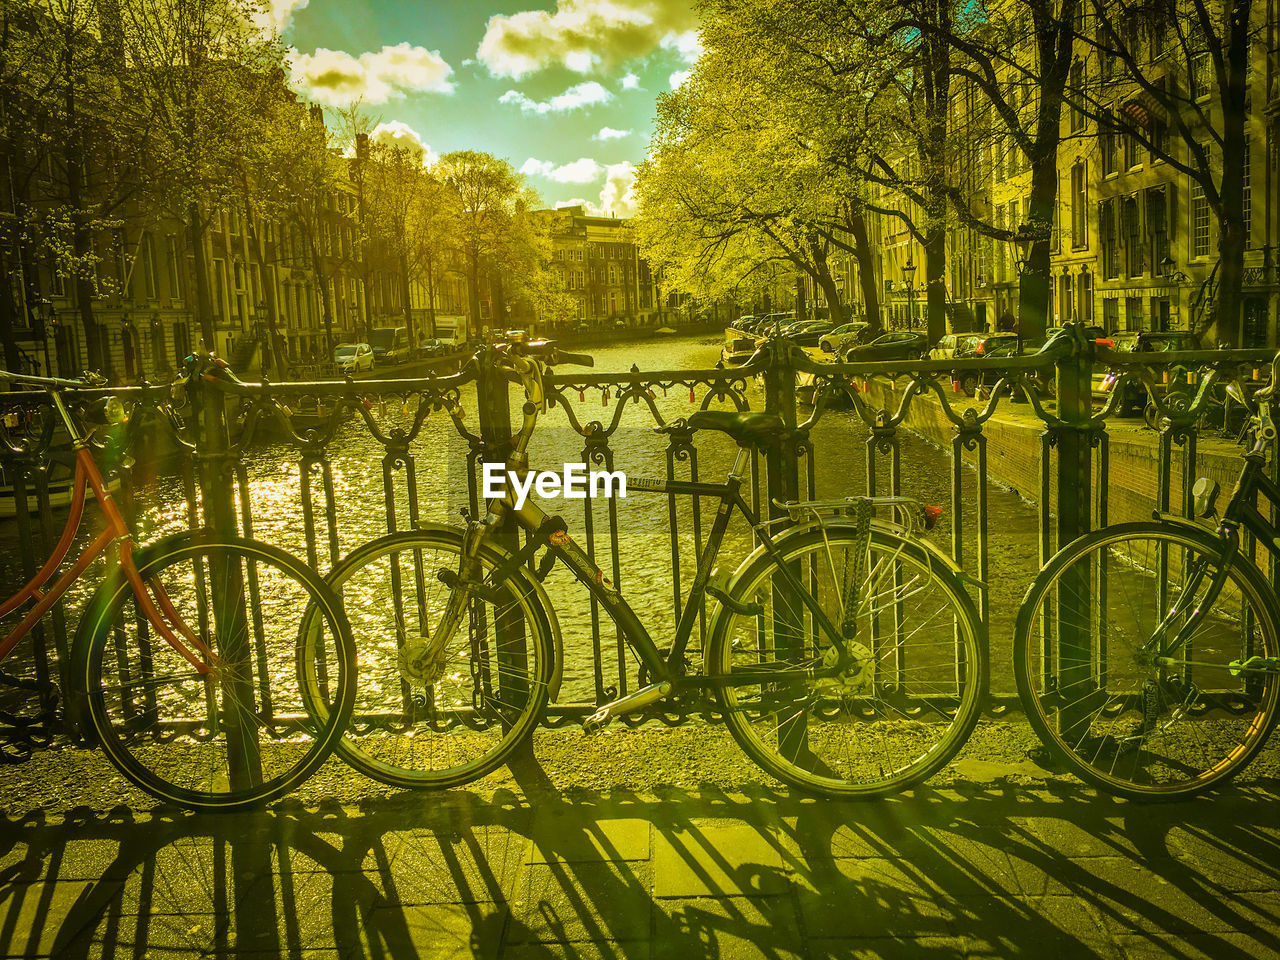 BICYCLE BY TREES IN CITY